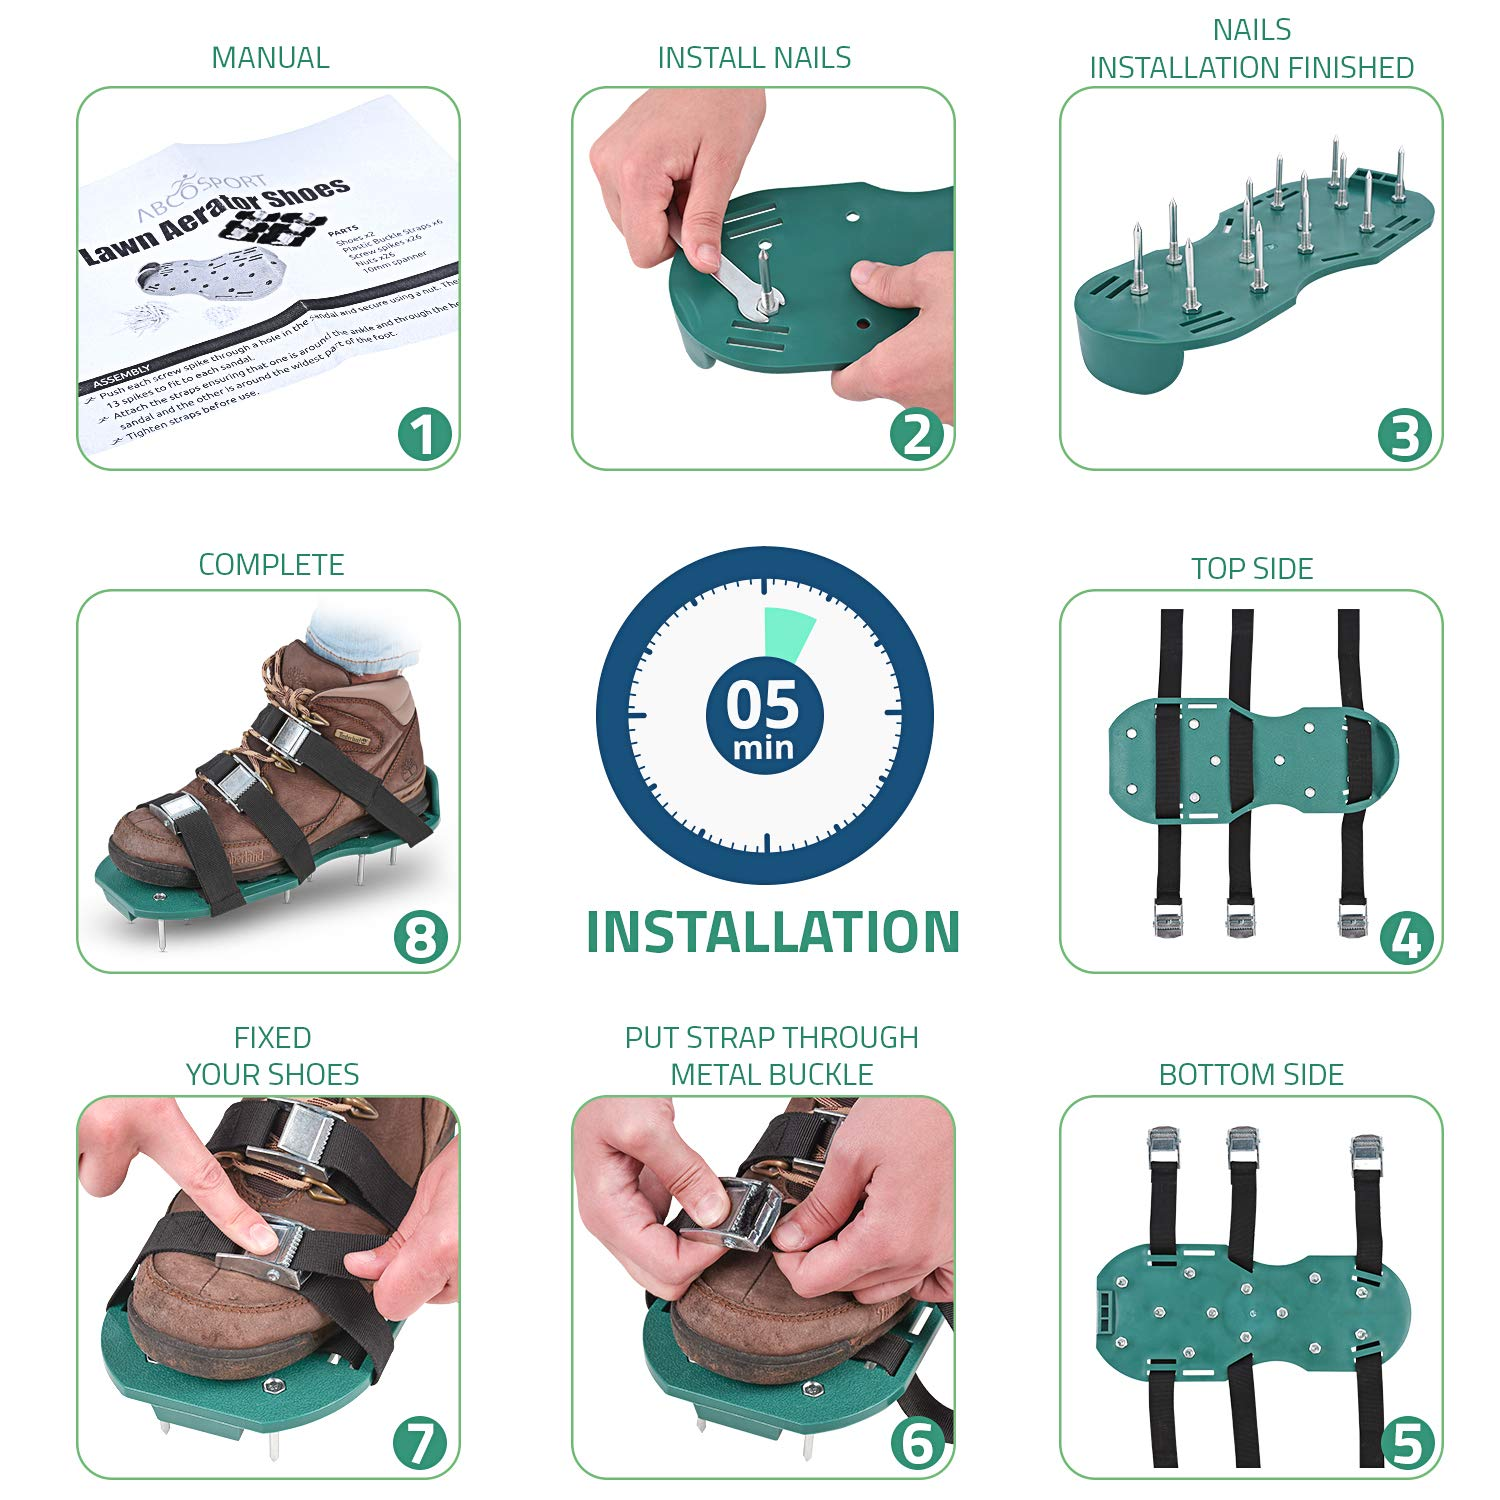 032f156811f7e Amazon.com   Lawn Aerator Spike Shoes - For Effectively Aerating Lawn Soil  - Comes with 3 Adjustable Straps with Metallic Buckles - Universal Size  that Fits ...